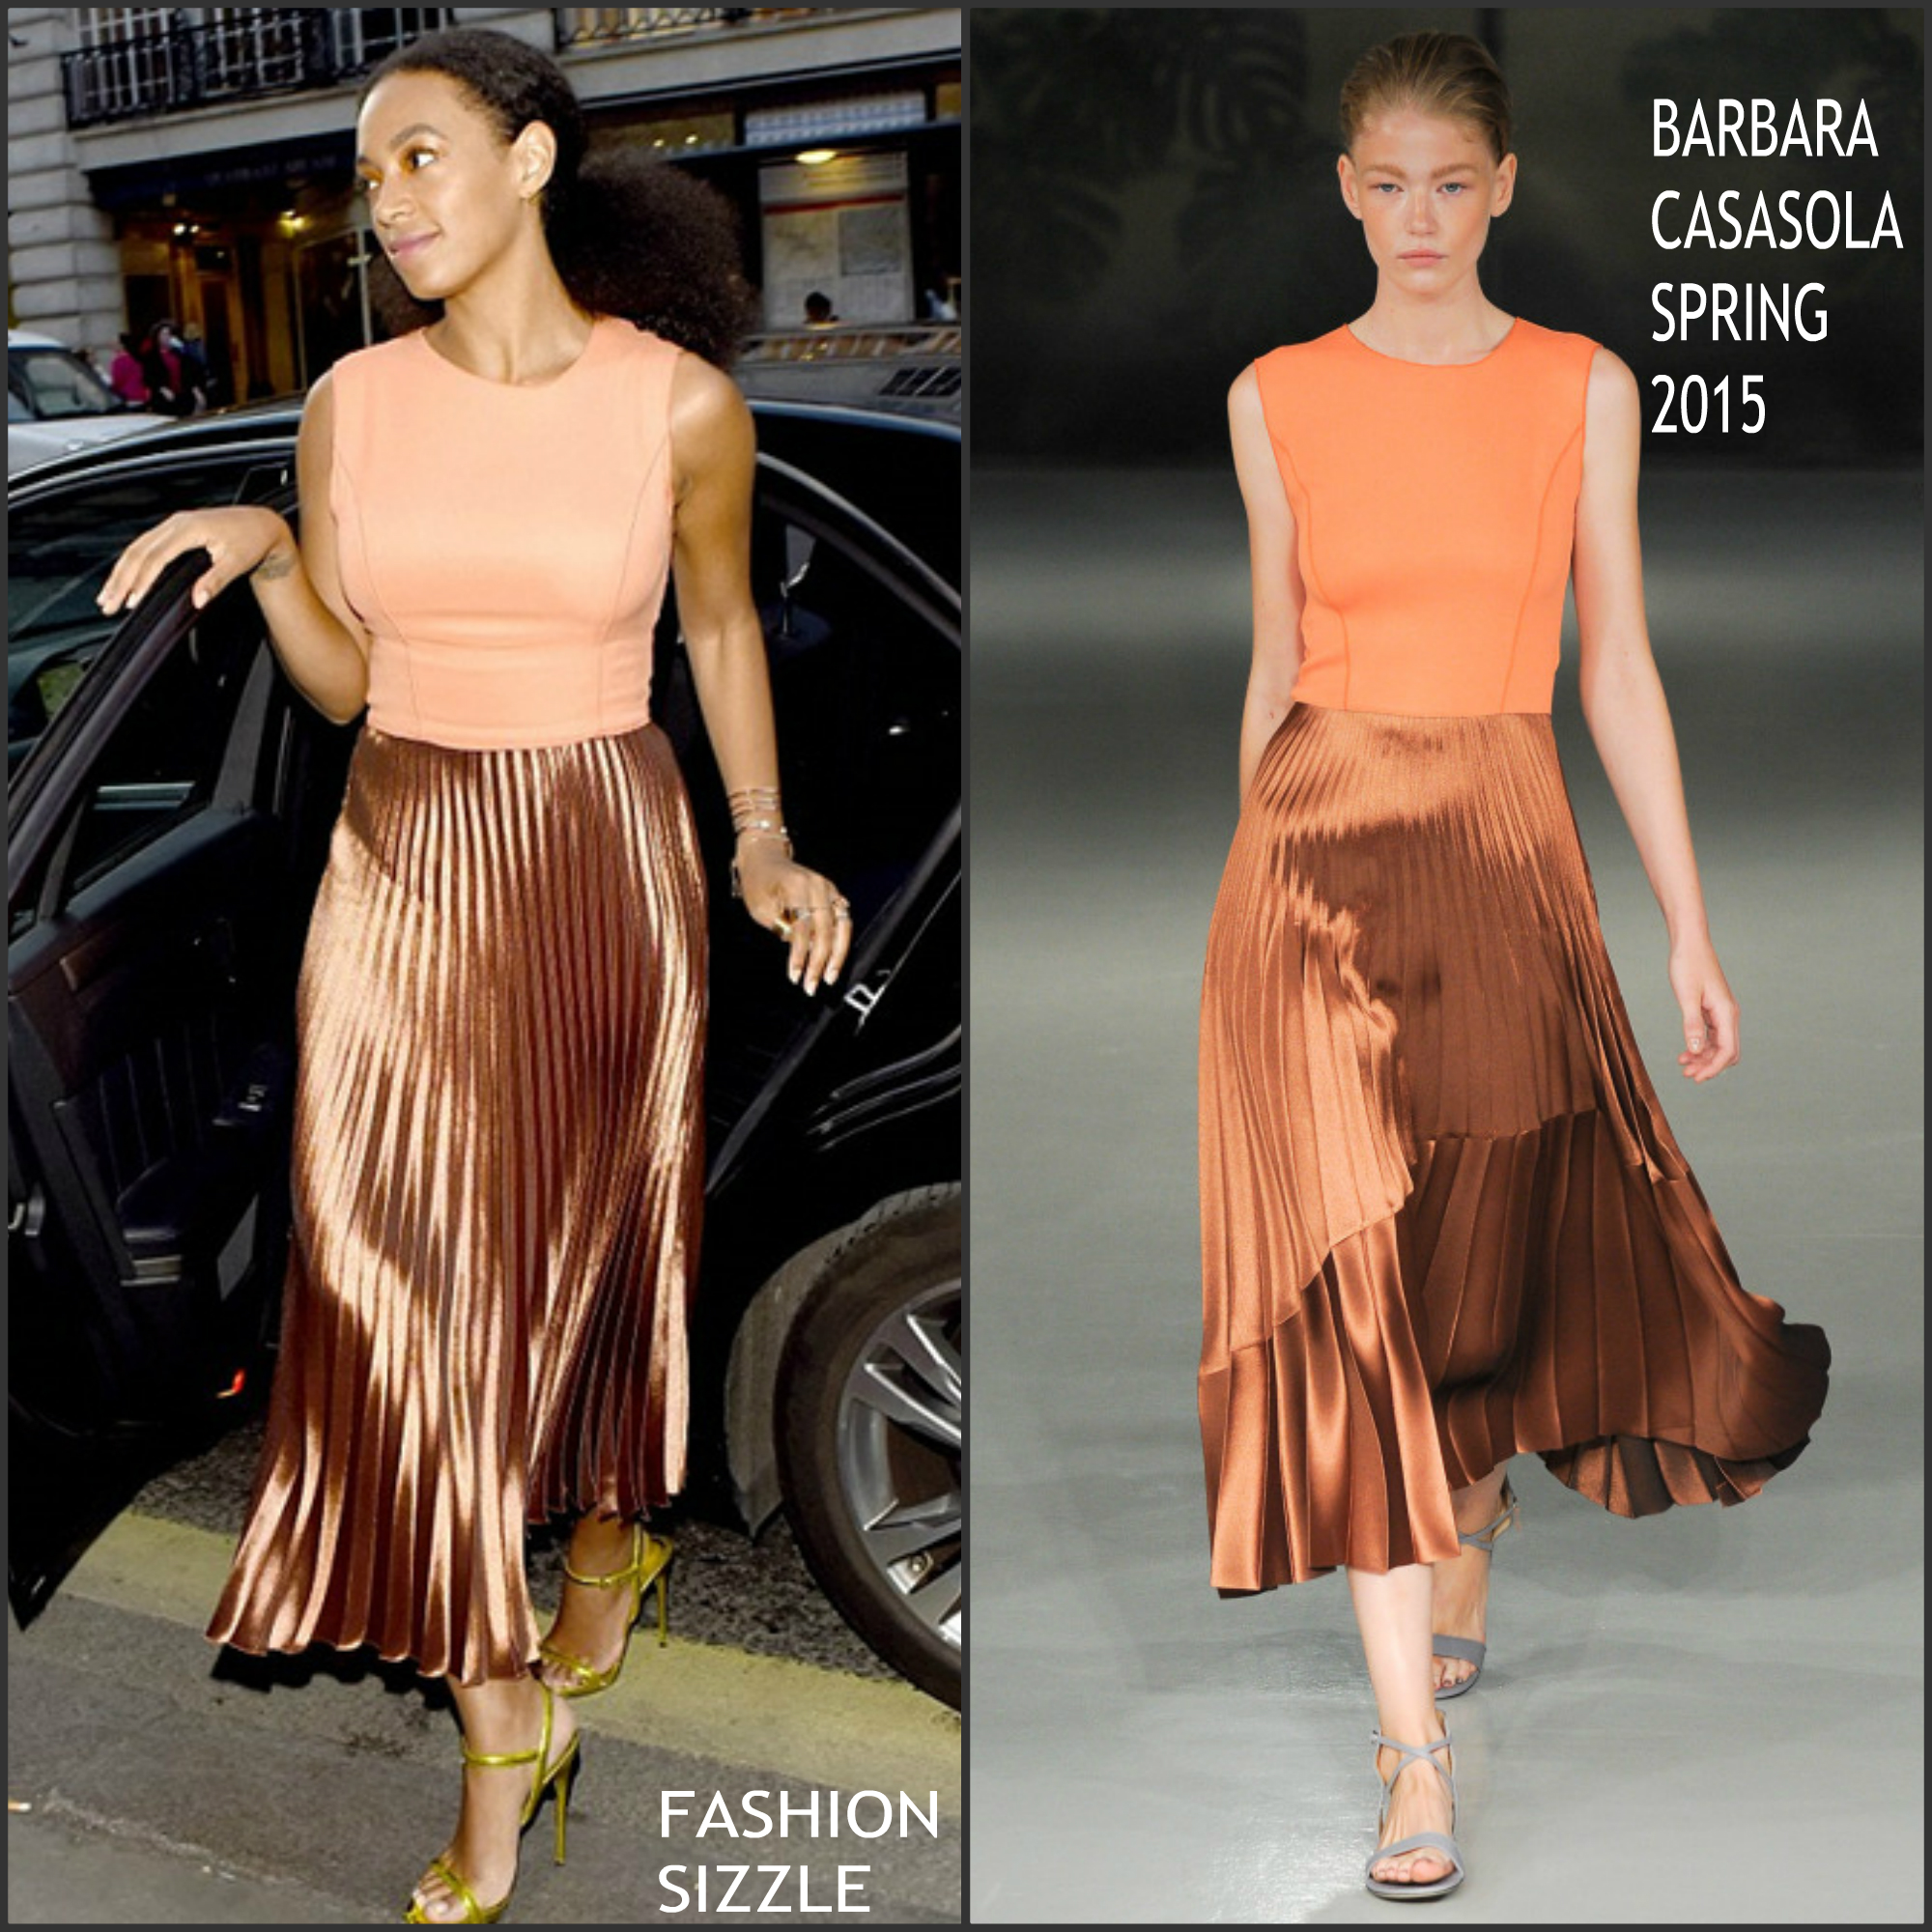 solange-knowles-in-babara-casasola-pioneers-by-nature-party